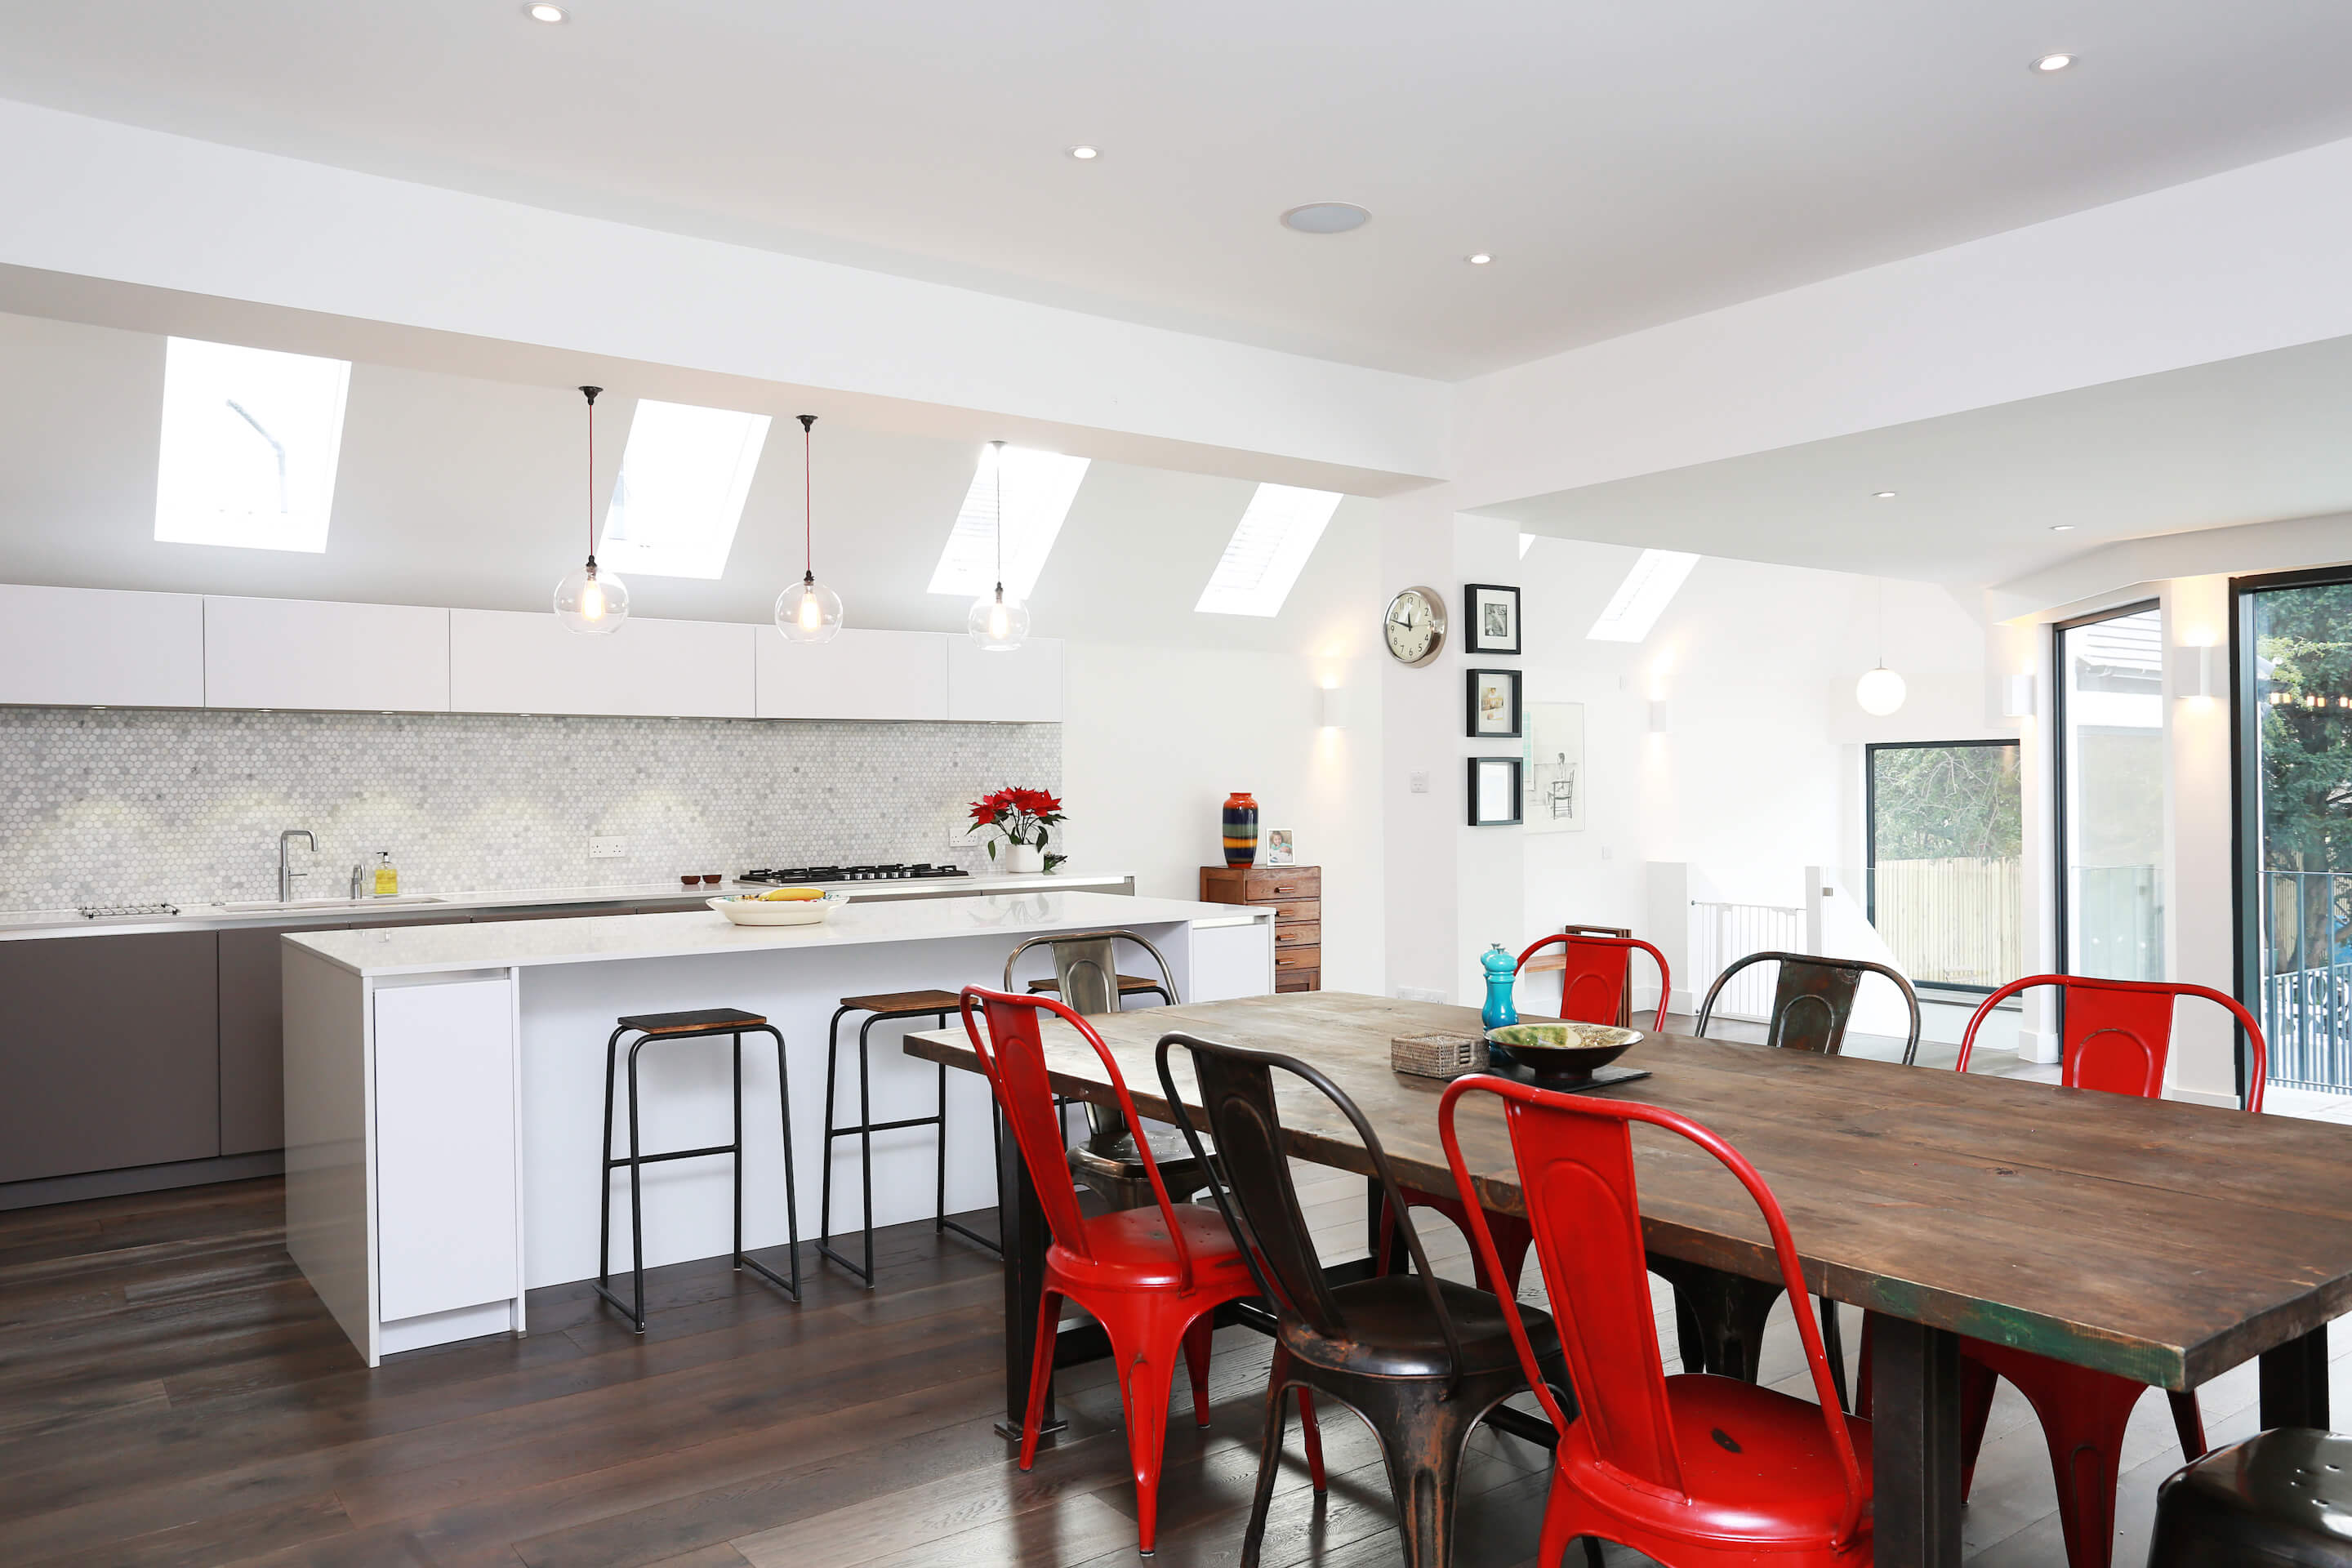 Grey kitchen modern kitchen london by lwk kitchens london - Grey Kitchen Modern Kitchen London By Lwk Kitchens London 9